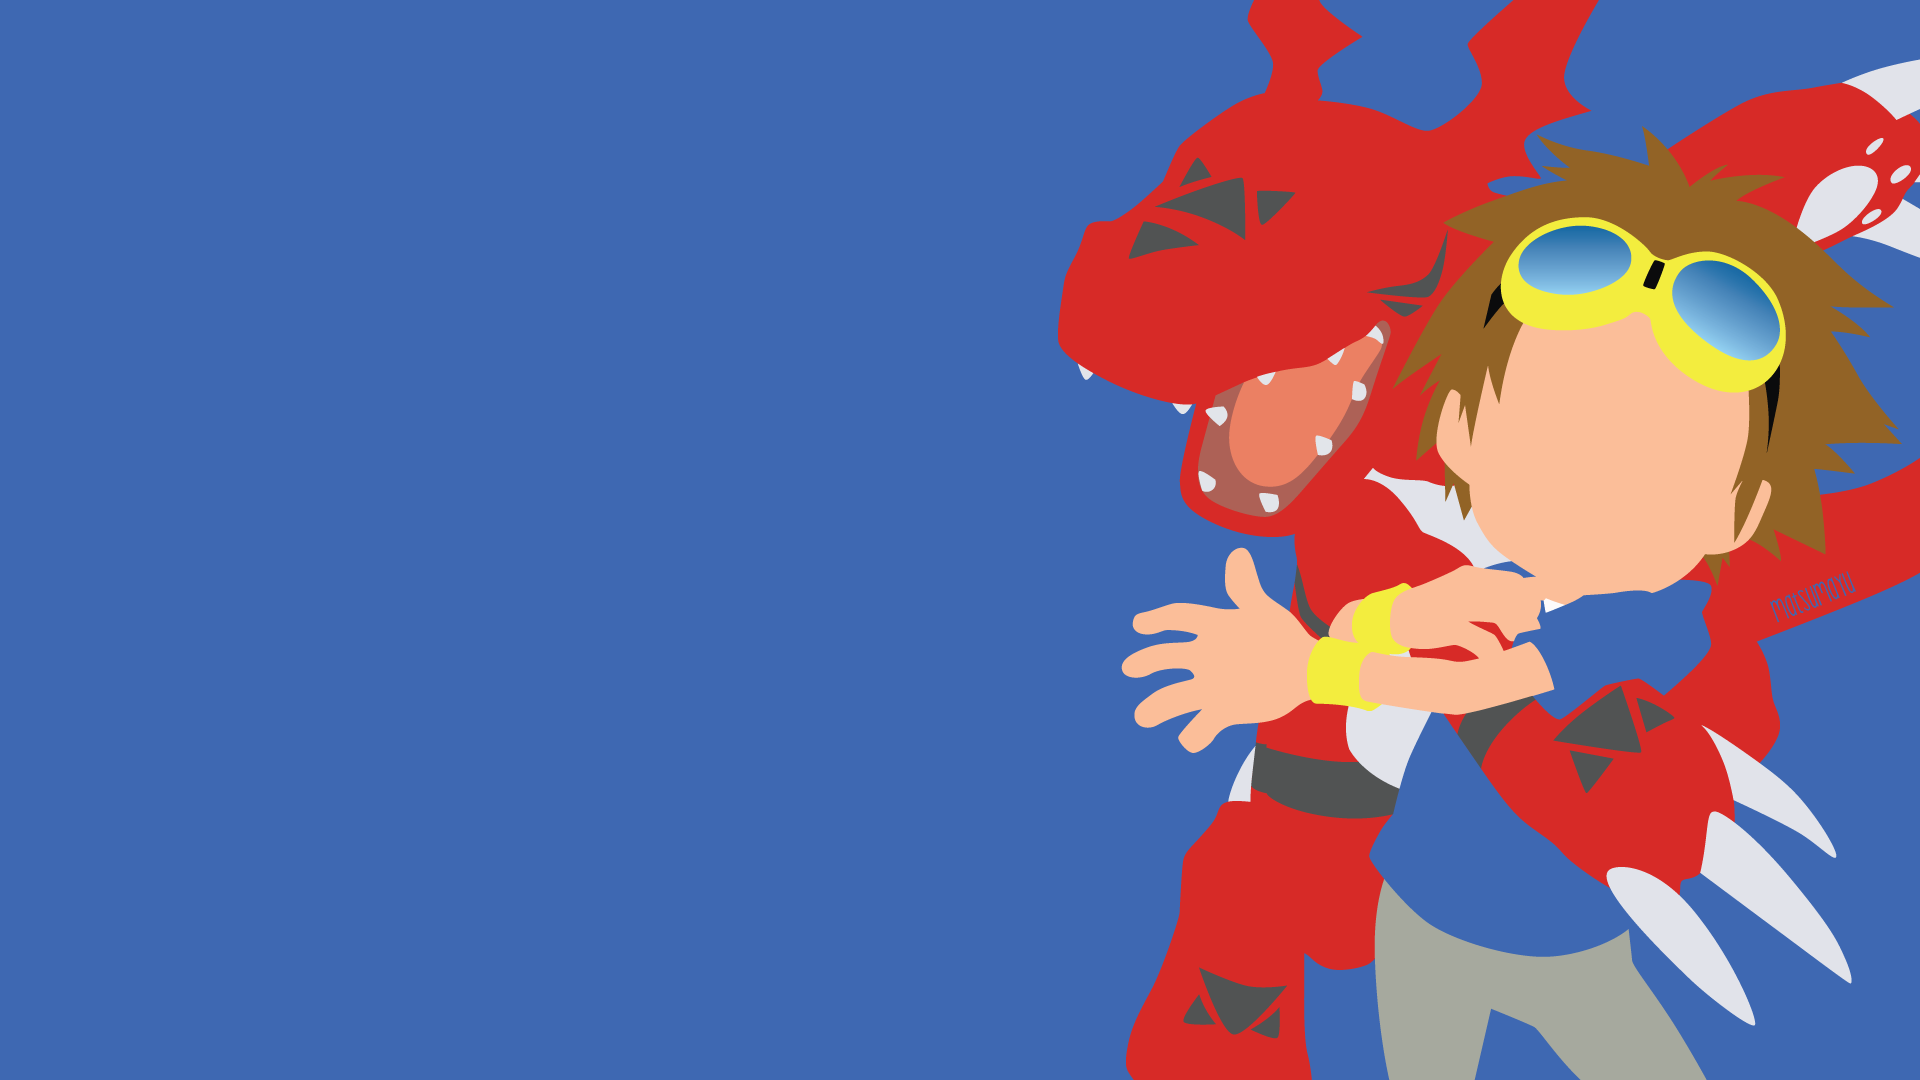 Digimon Full Hd Wallpaper And Background 1920x1080 Id HD Wallpapers Download Free Images Wallpaper [1000image.com]